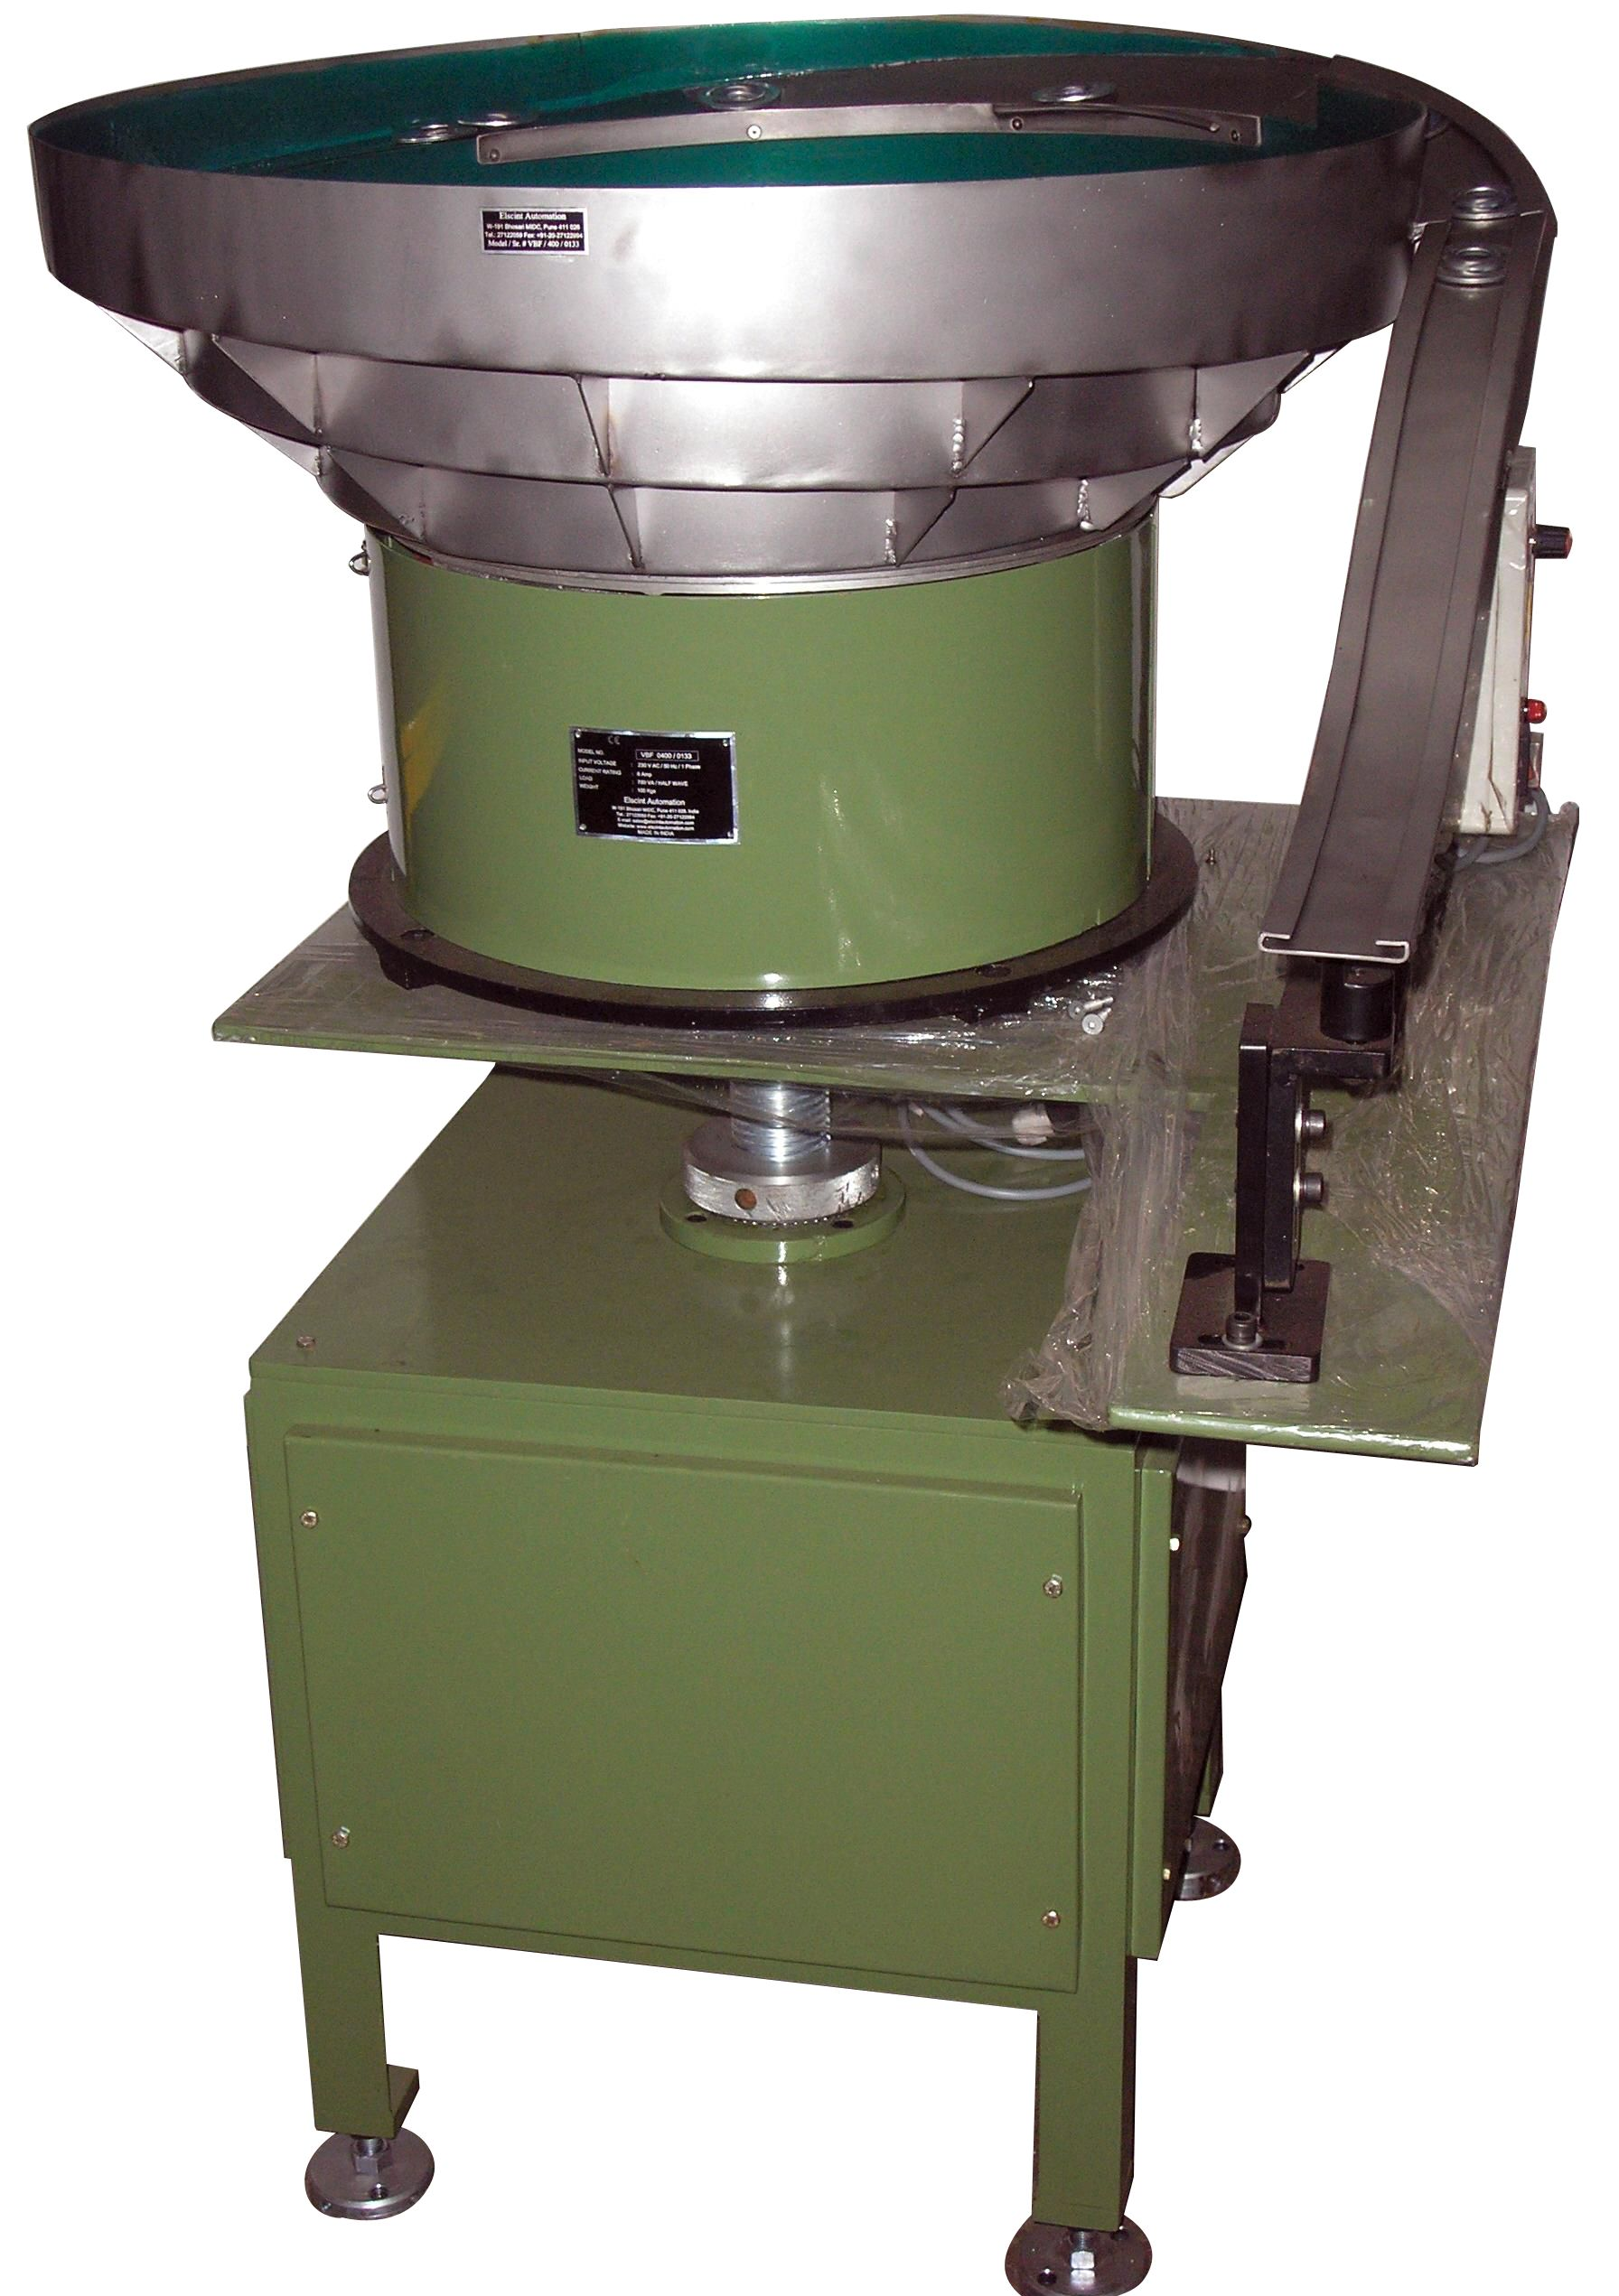 bowl mass a manufacturing lecmc lmc customization ajay systems feeder source dfaculty masscust and vibratory boothroyd courses